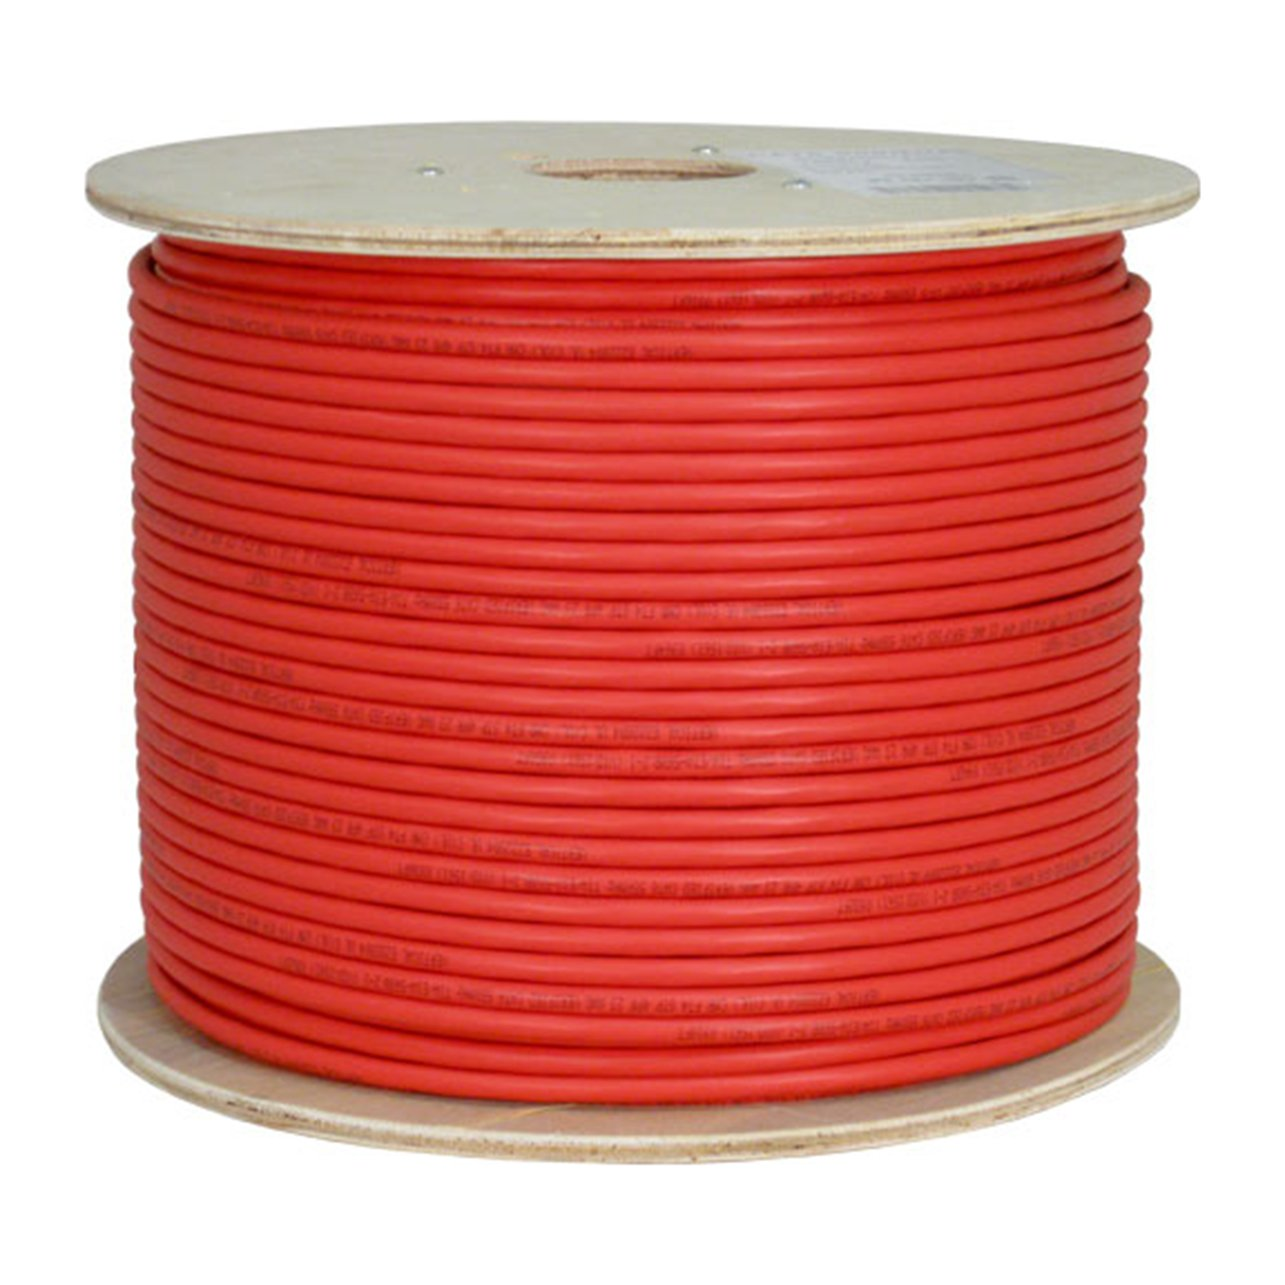 Vertical Cable Cat6a 10g Stp 23awg Solid Bare Copper Electrical Wire And Pvc 1000ft Red Bulk Ethernet Computers Accessories